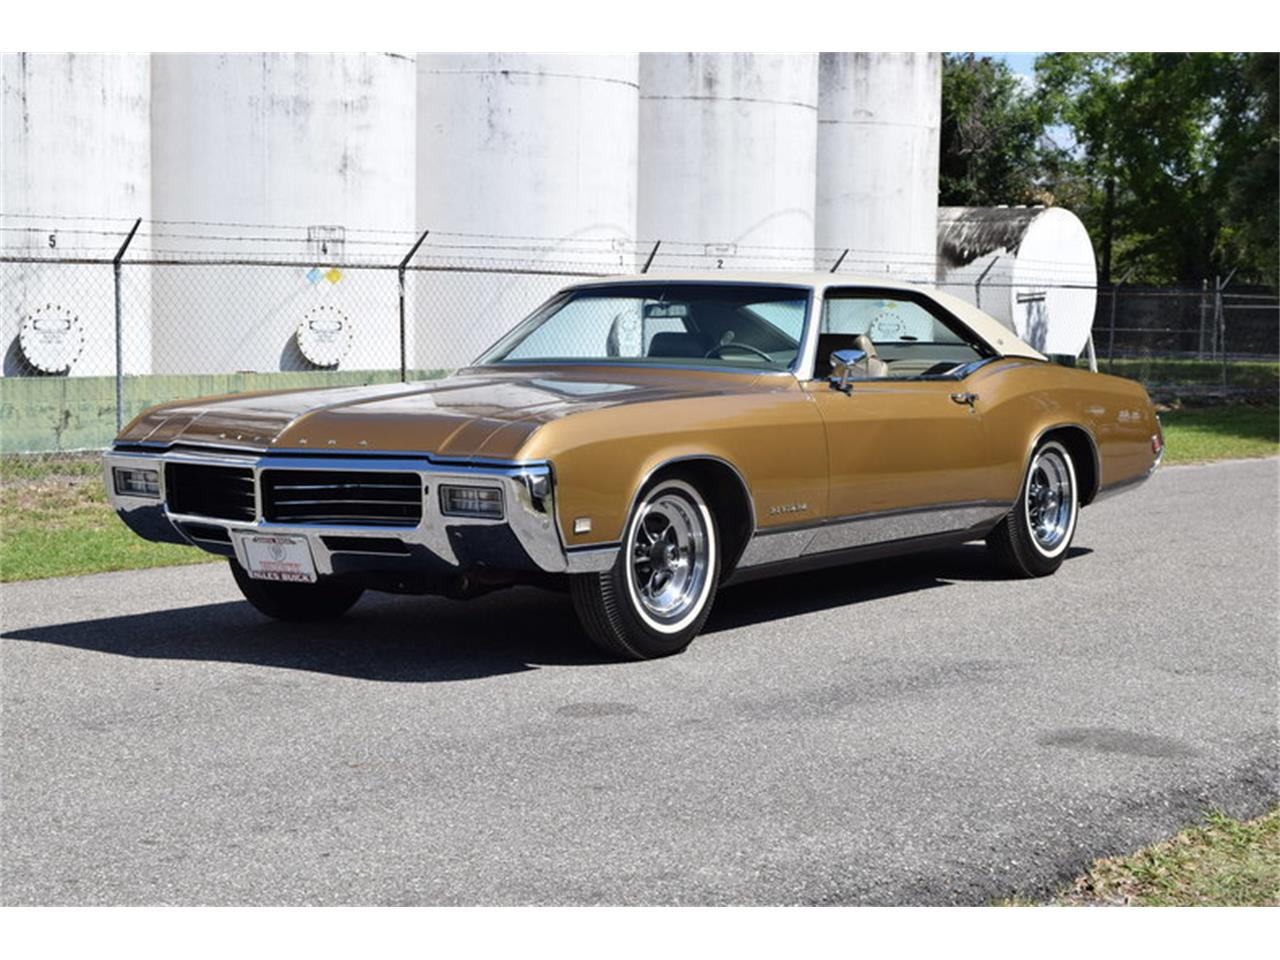 Large Picture of 1969 Buick Riviera located in Zephyrhills Florida Auction Vehicle Offered by SunCoast Auto Auction - ONHO